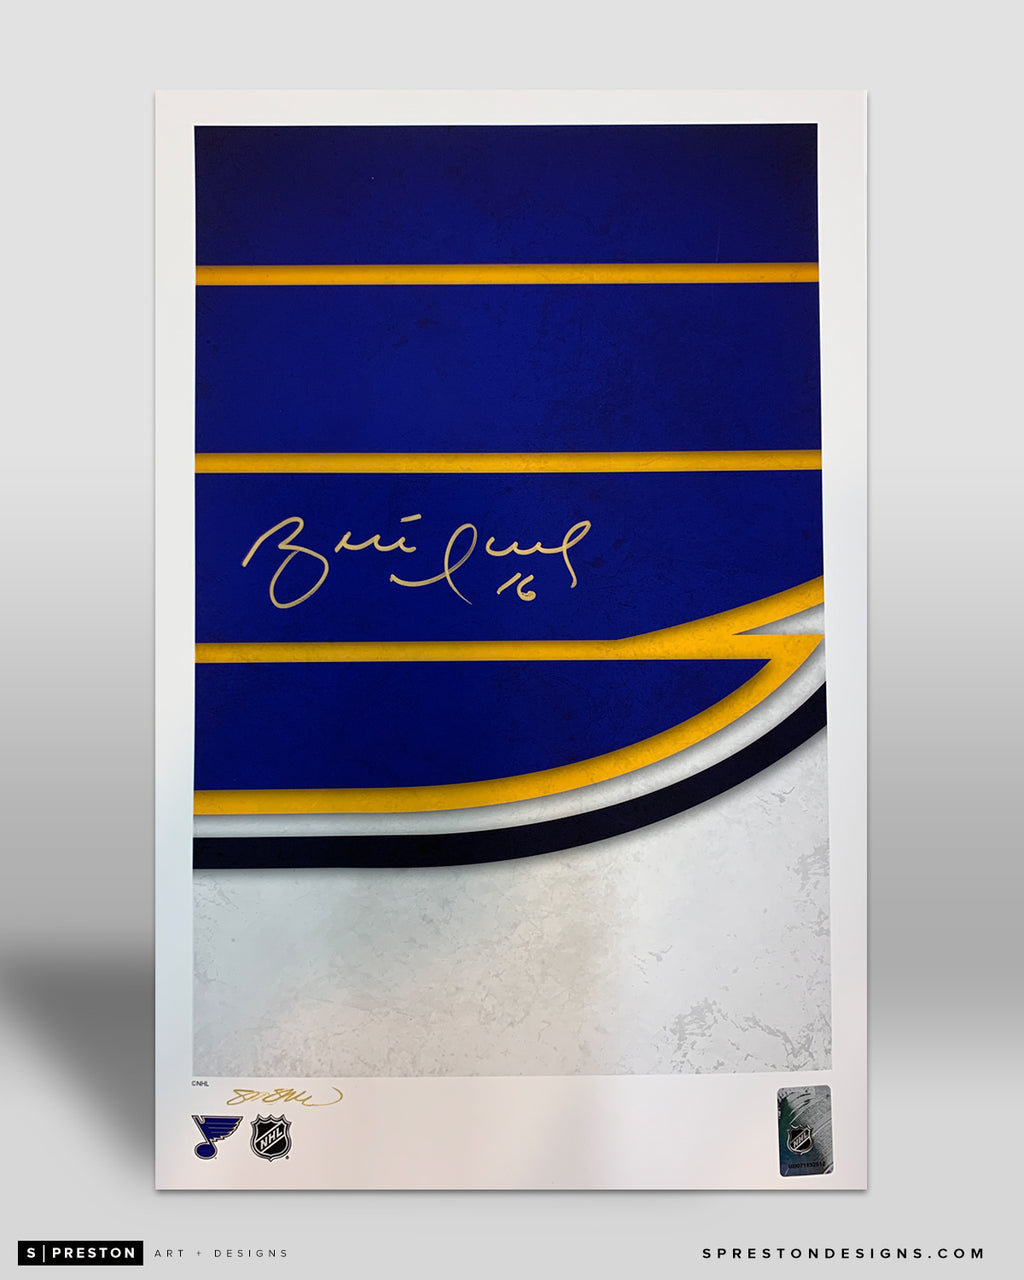 Minimalist St. Louis Blues Logo Art Poster - Brett Hull Signed